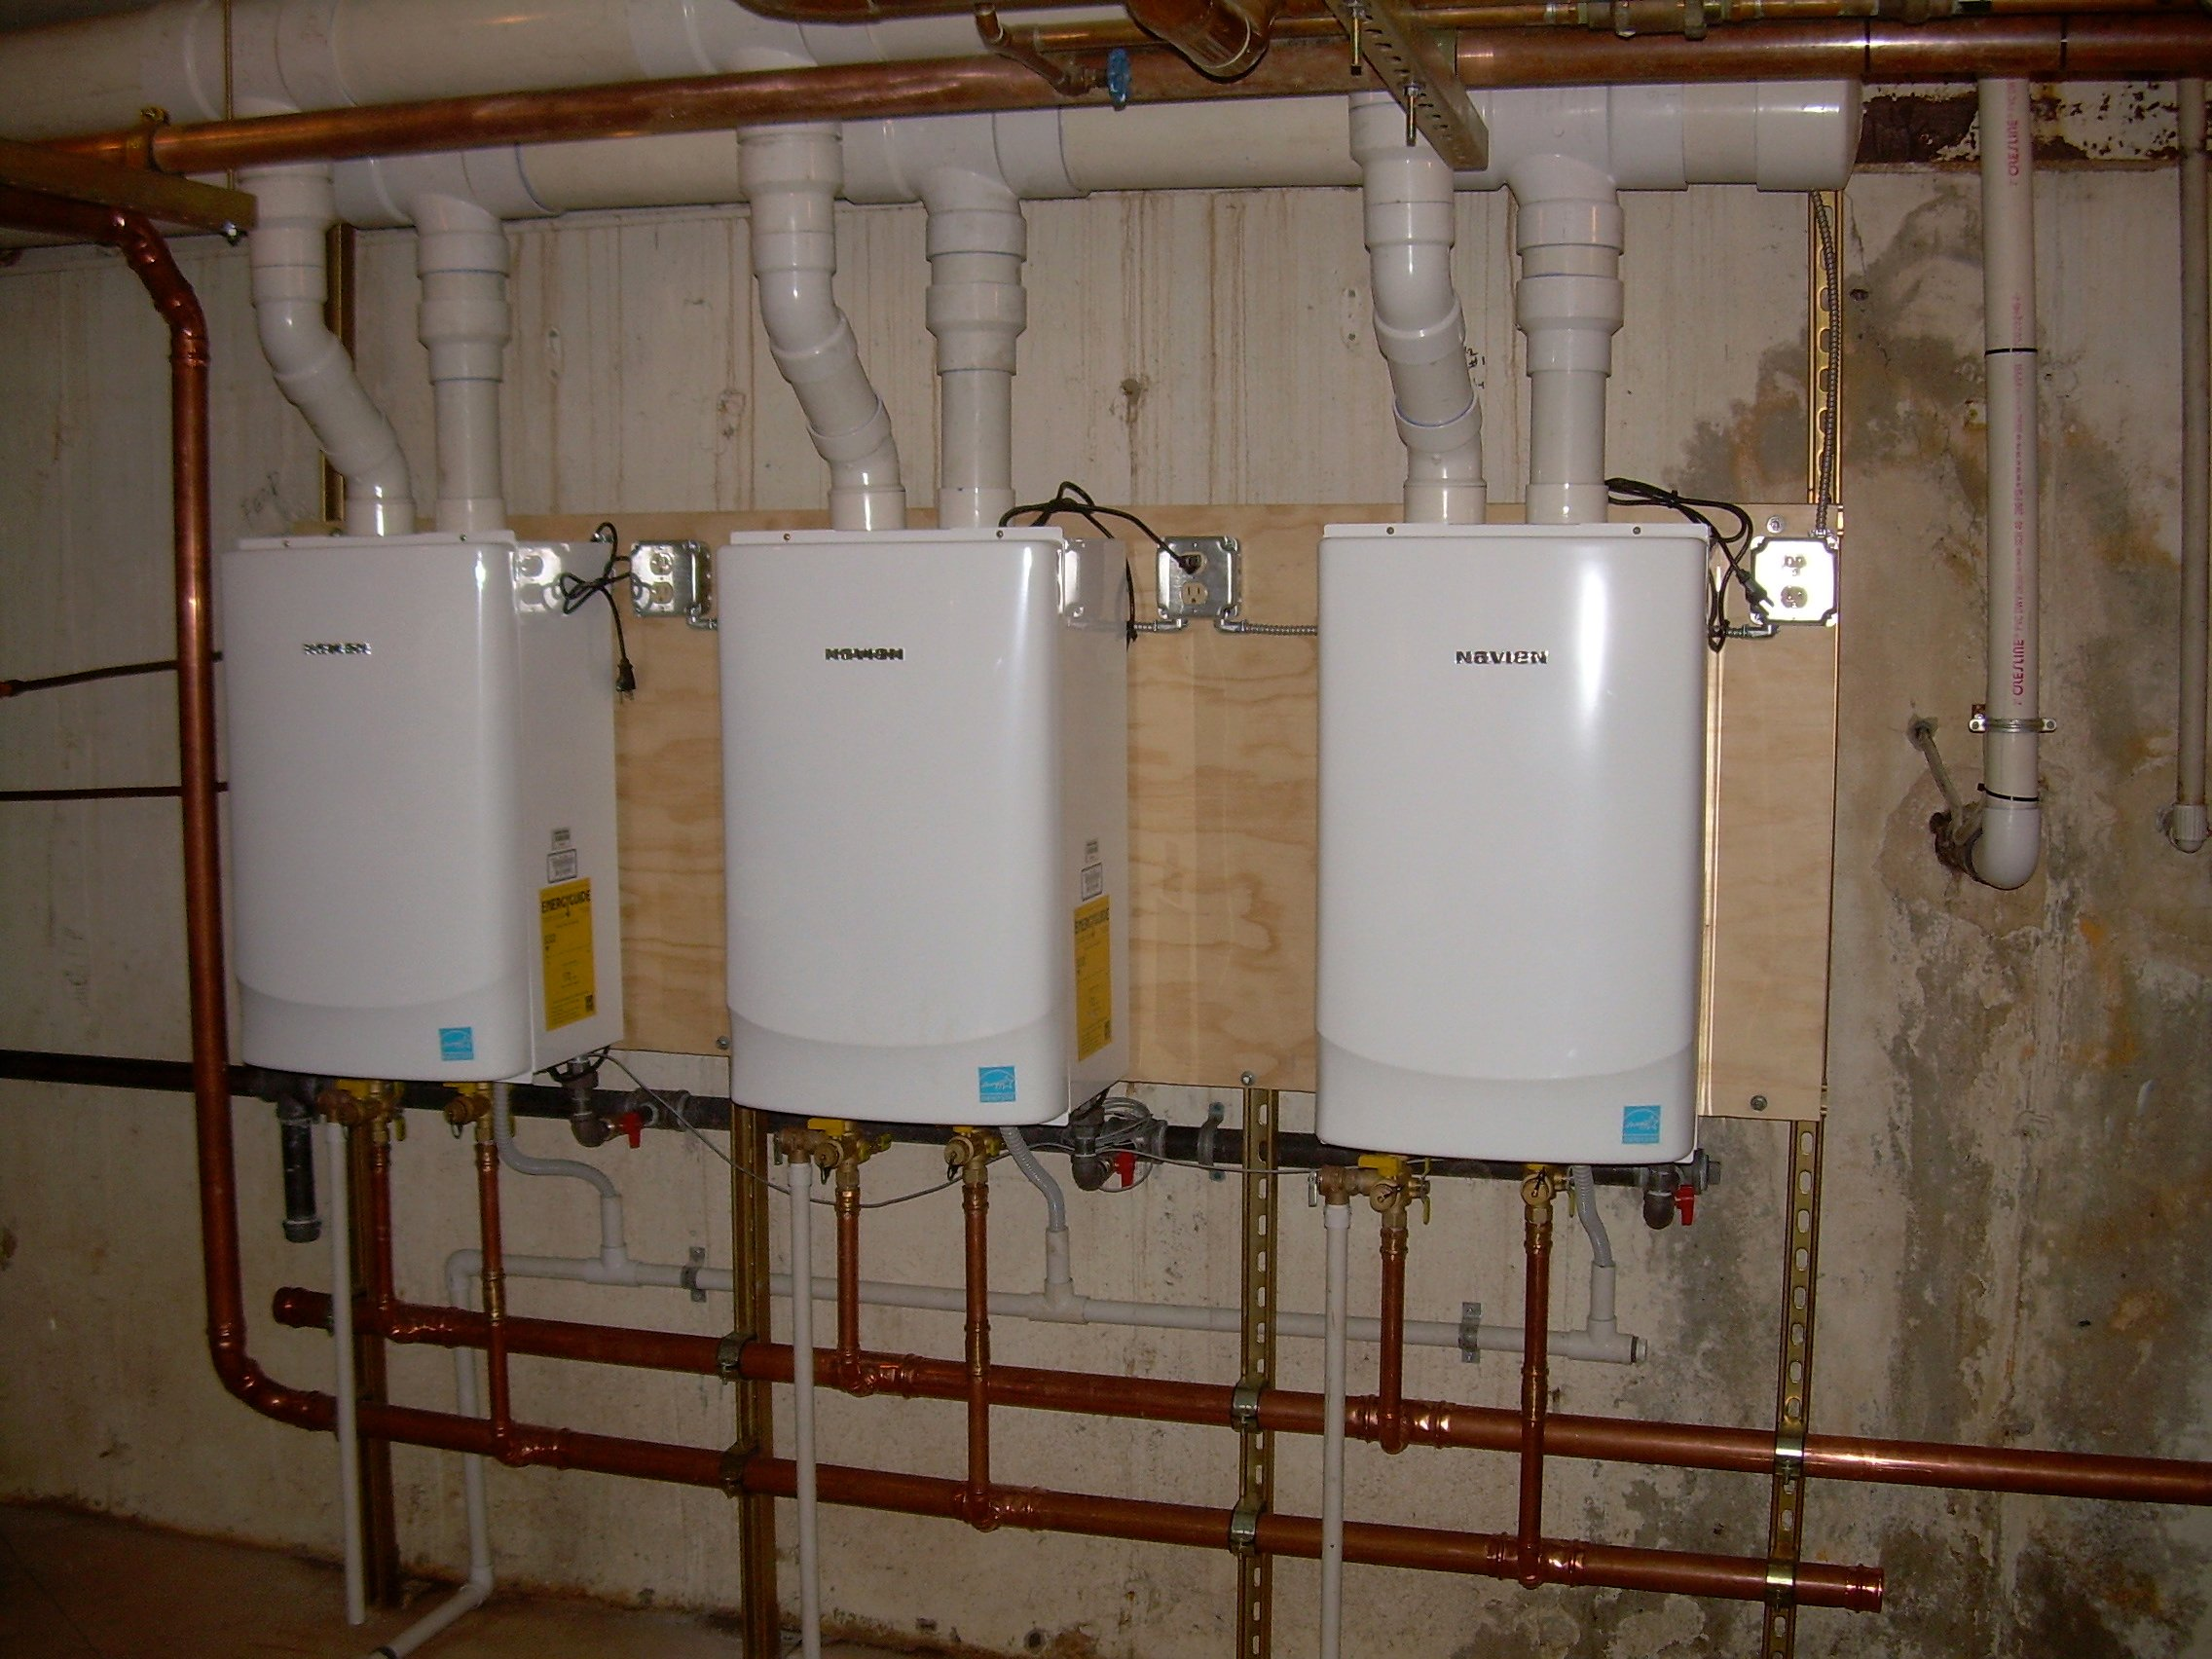 Navien Tankless Water Heater Venting : Navien tankless a big mistake — heating help the wall